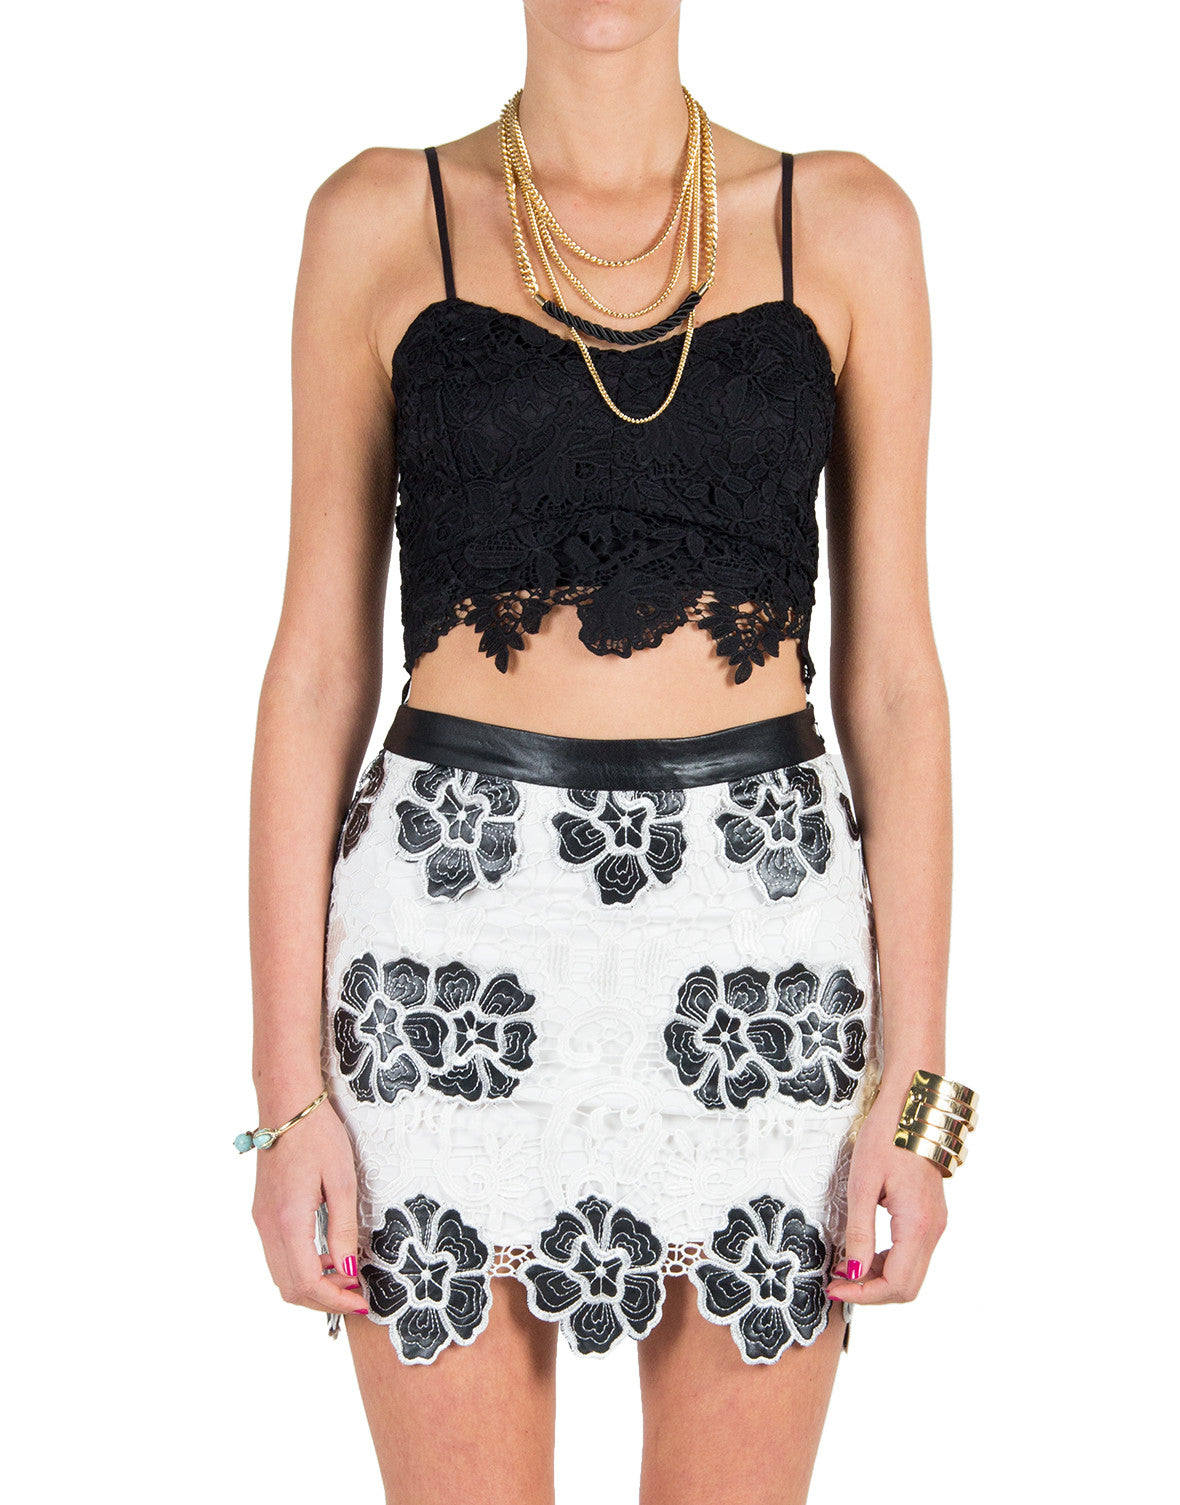 Lush Clothing - Floral Crochet Lace Cropped Top - Black - Large